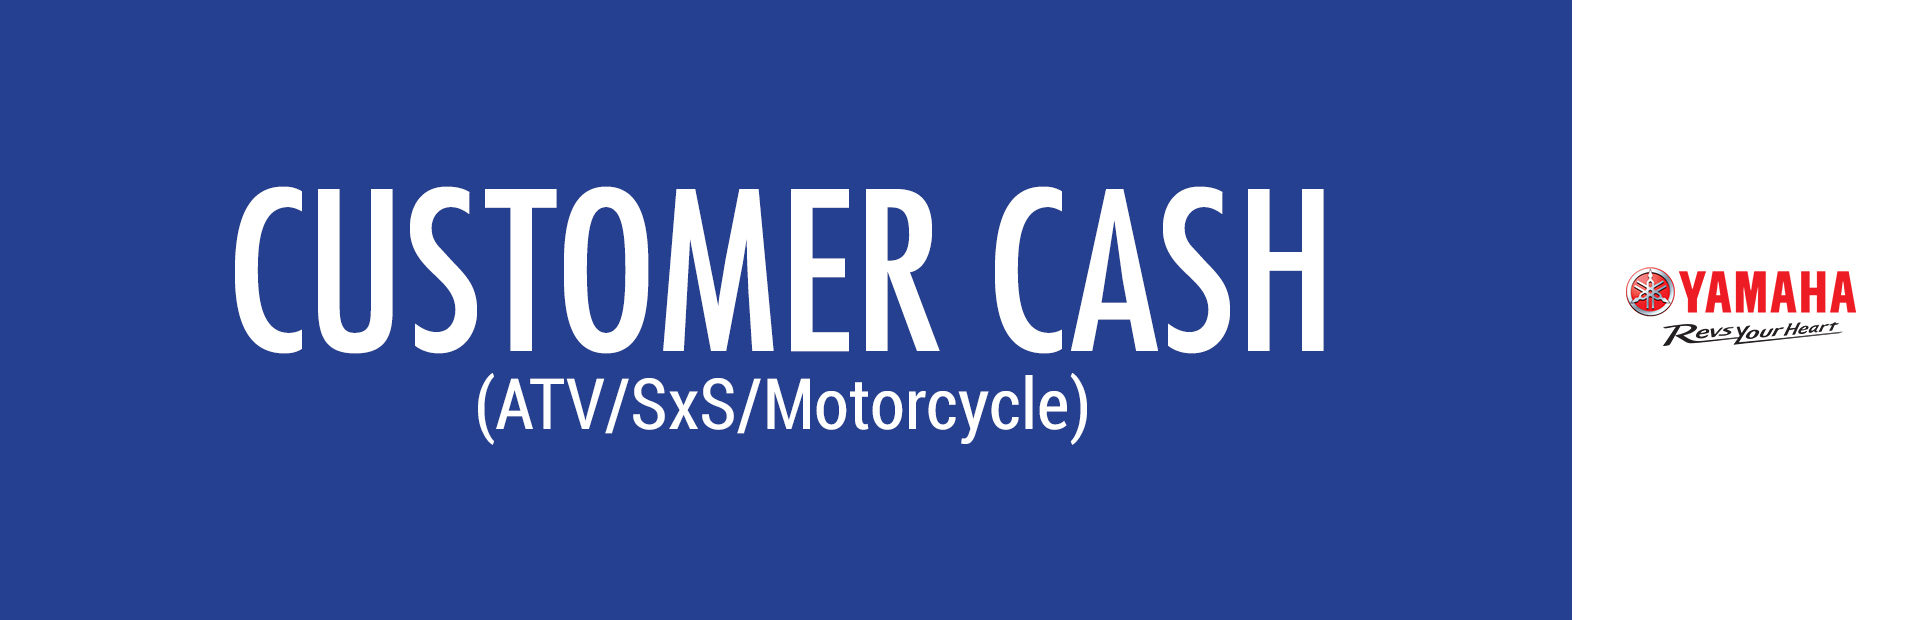 Customer Cash (ATV/SxS/Motorcycle)